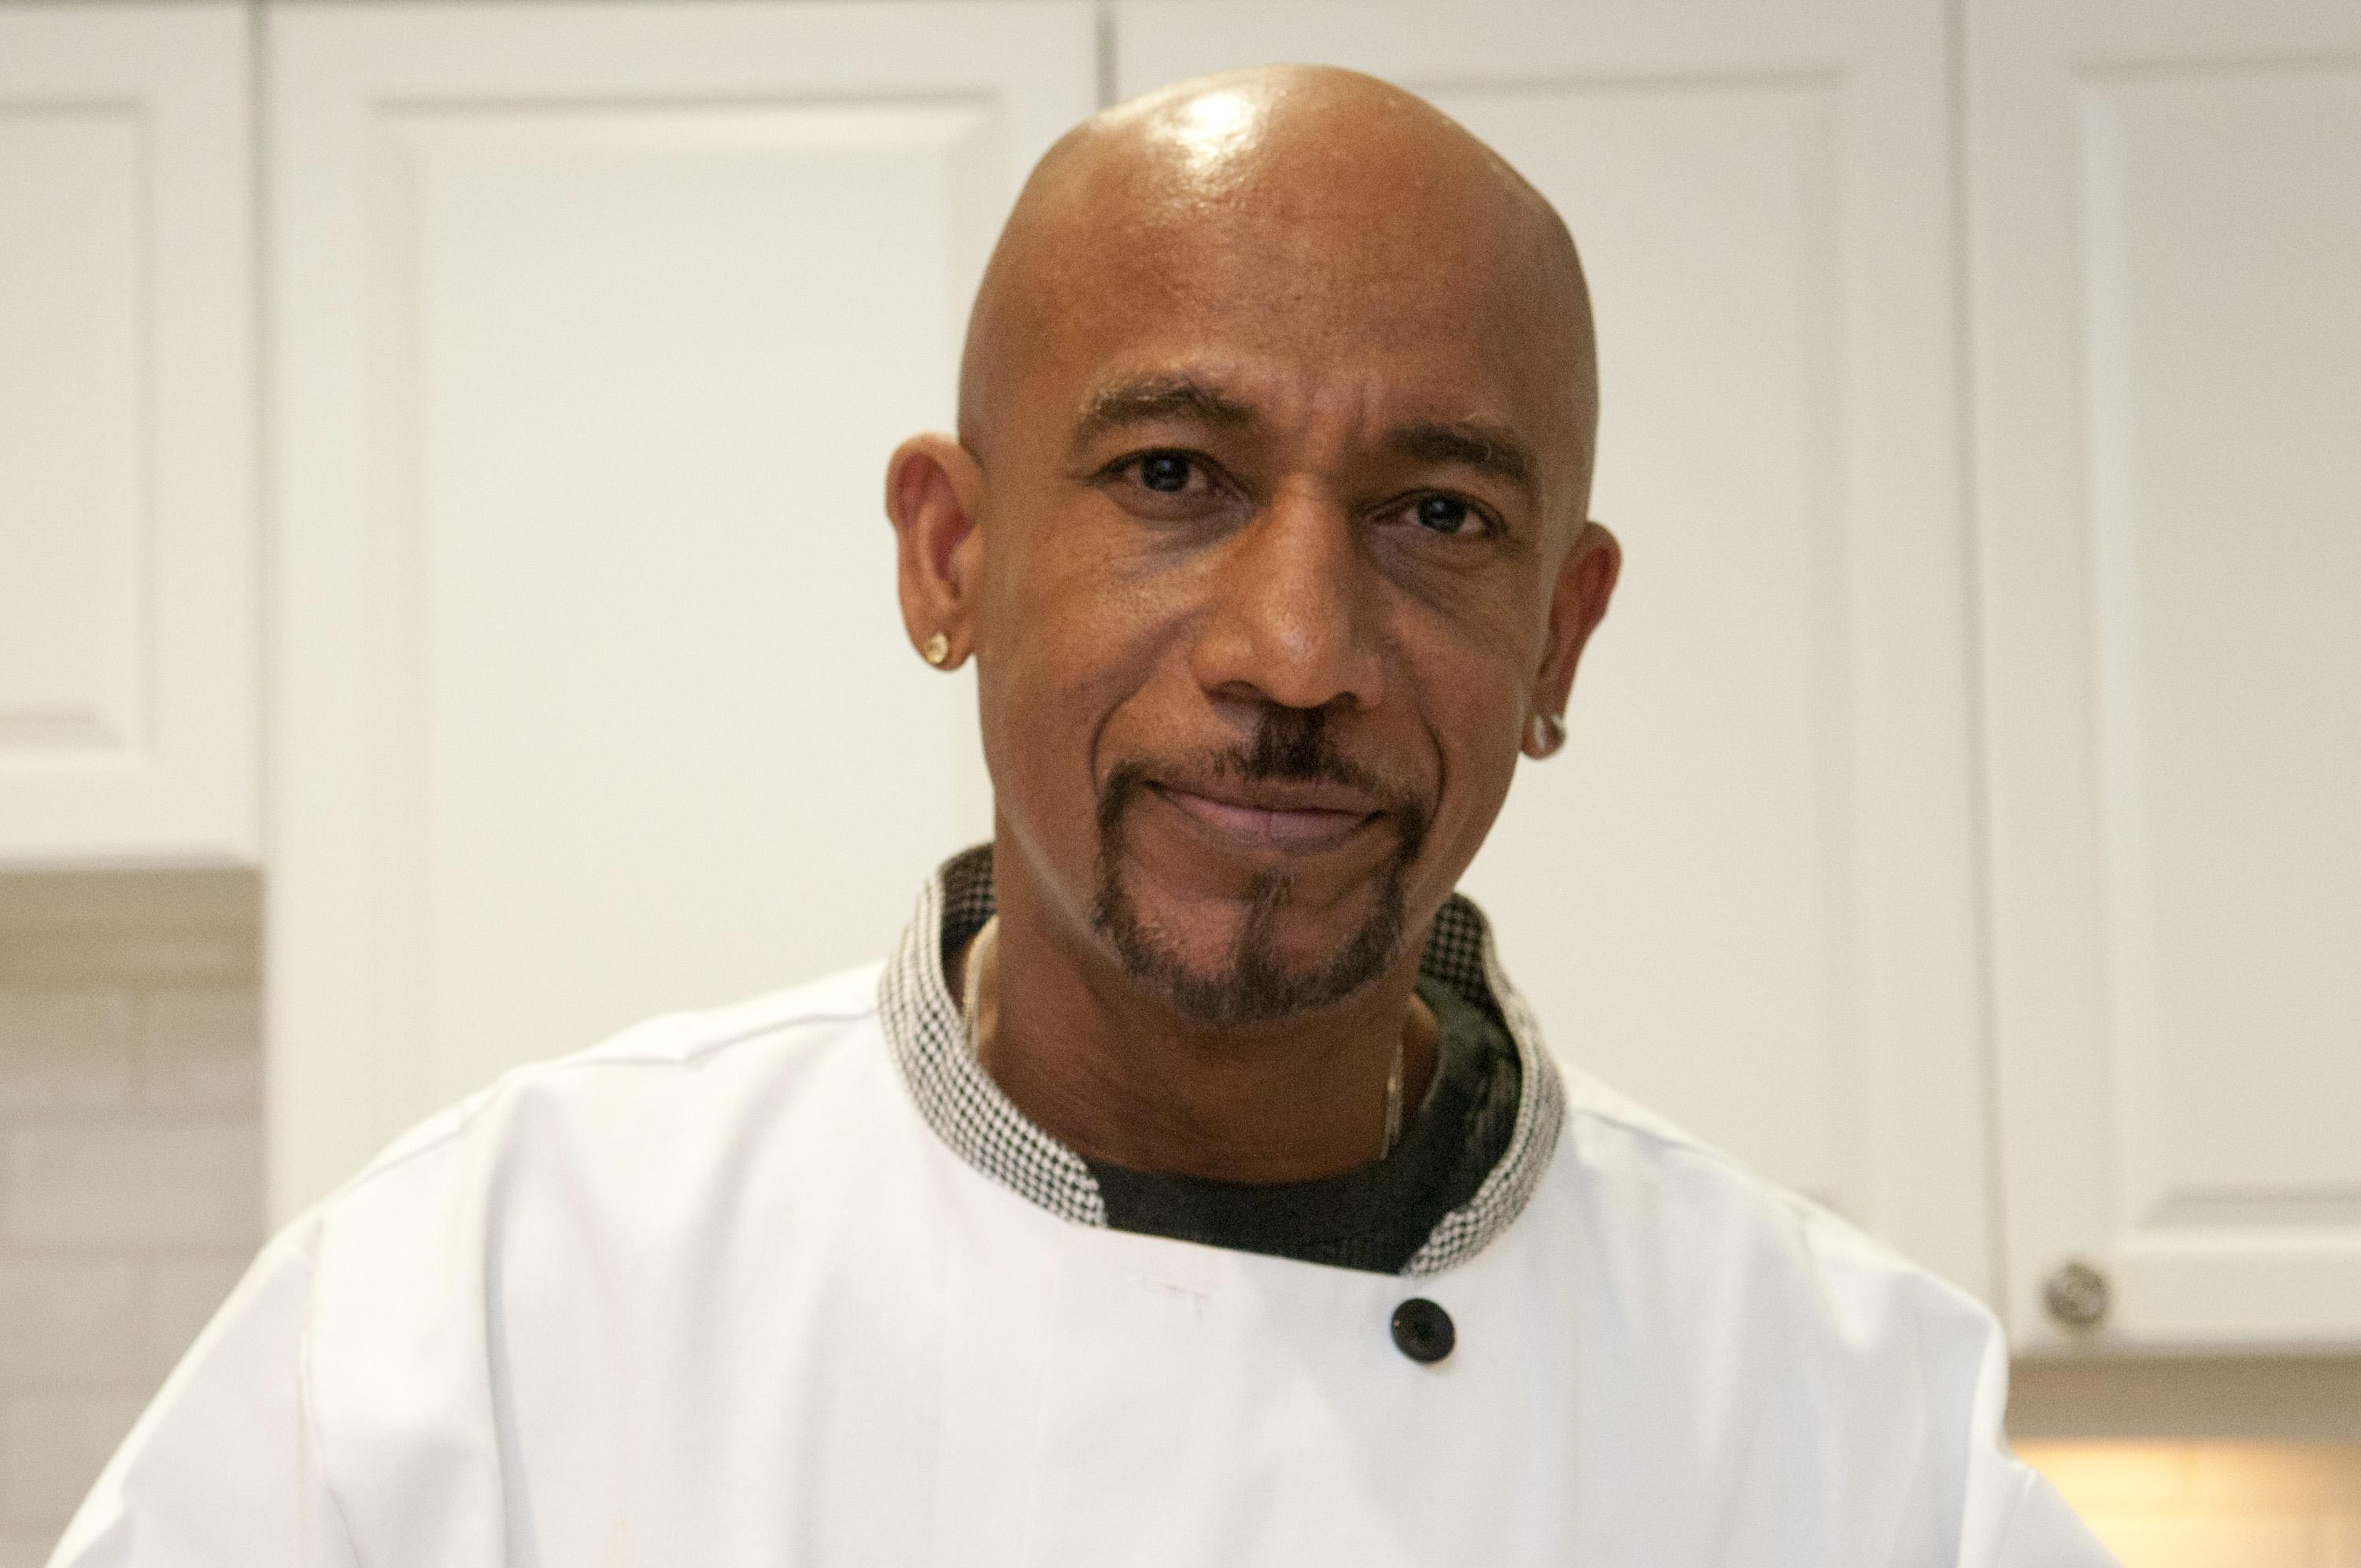 Montel Williams Prepares Annual Holiday Meal For Military Families